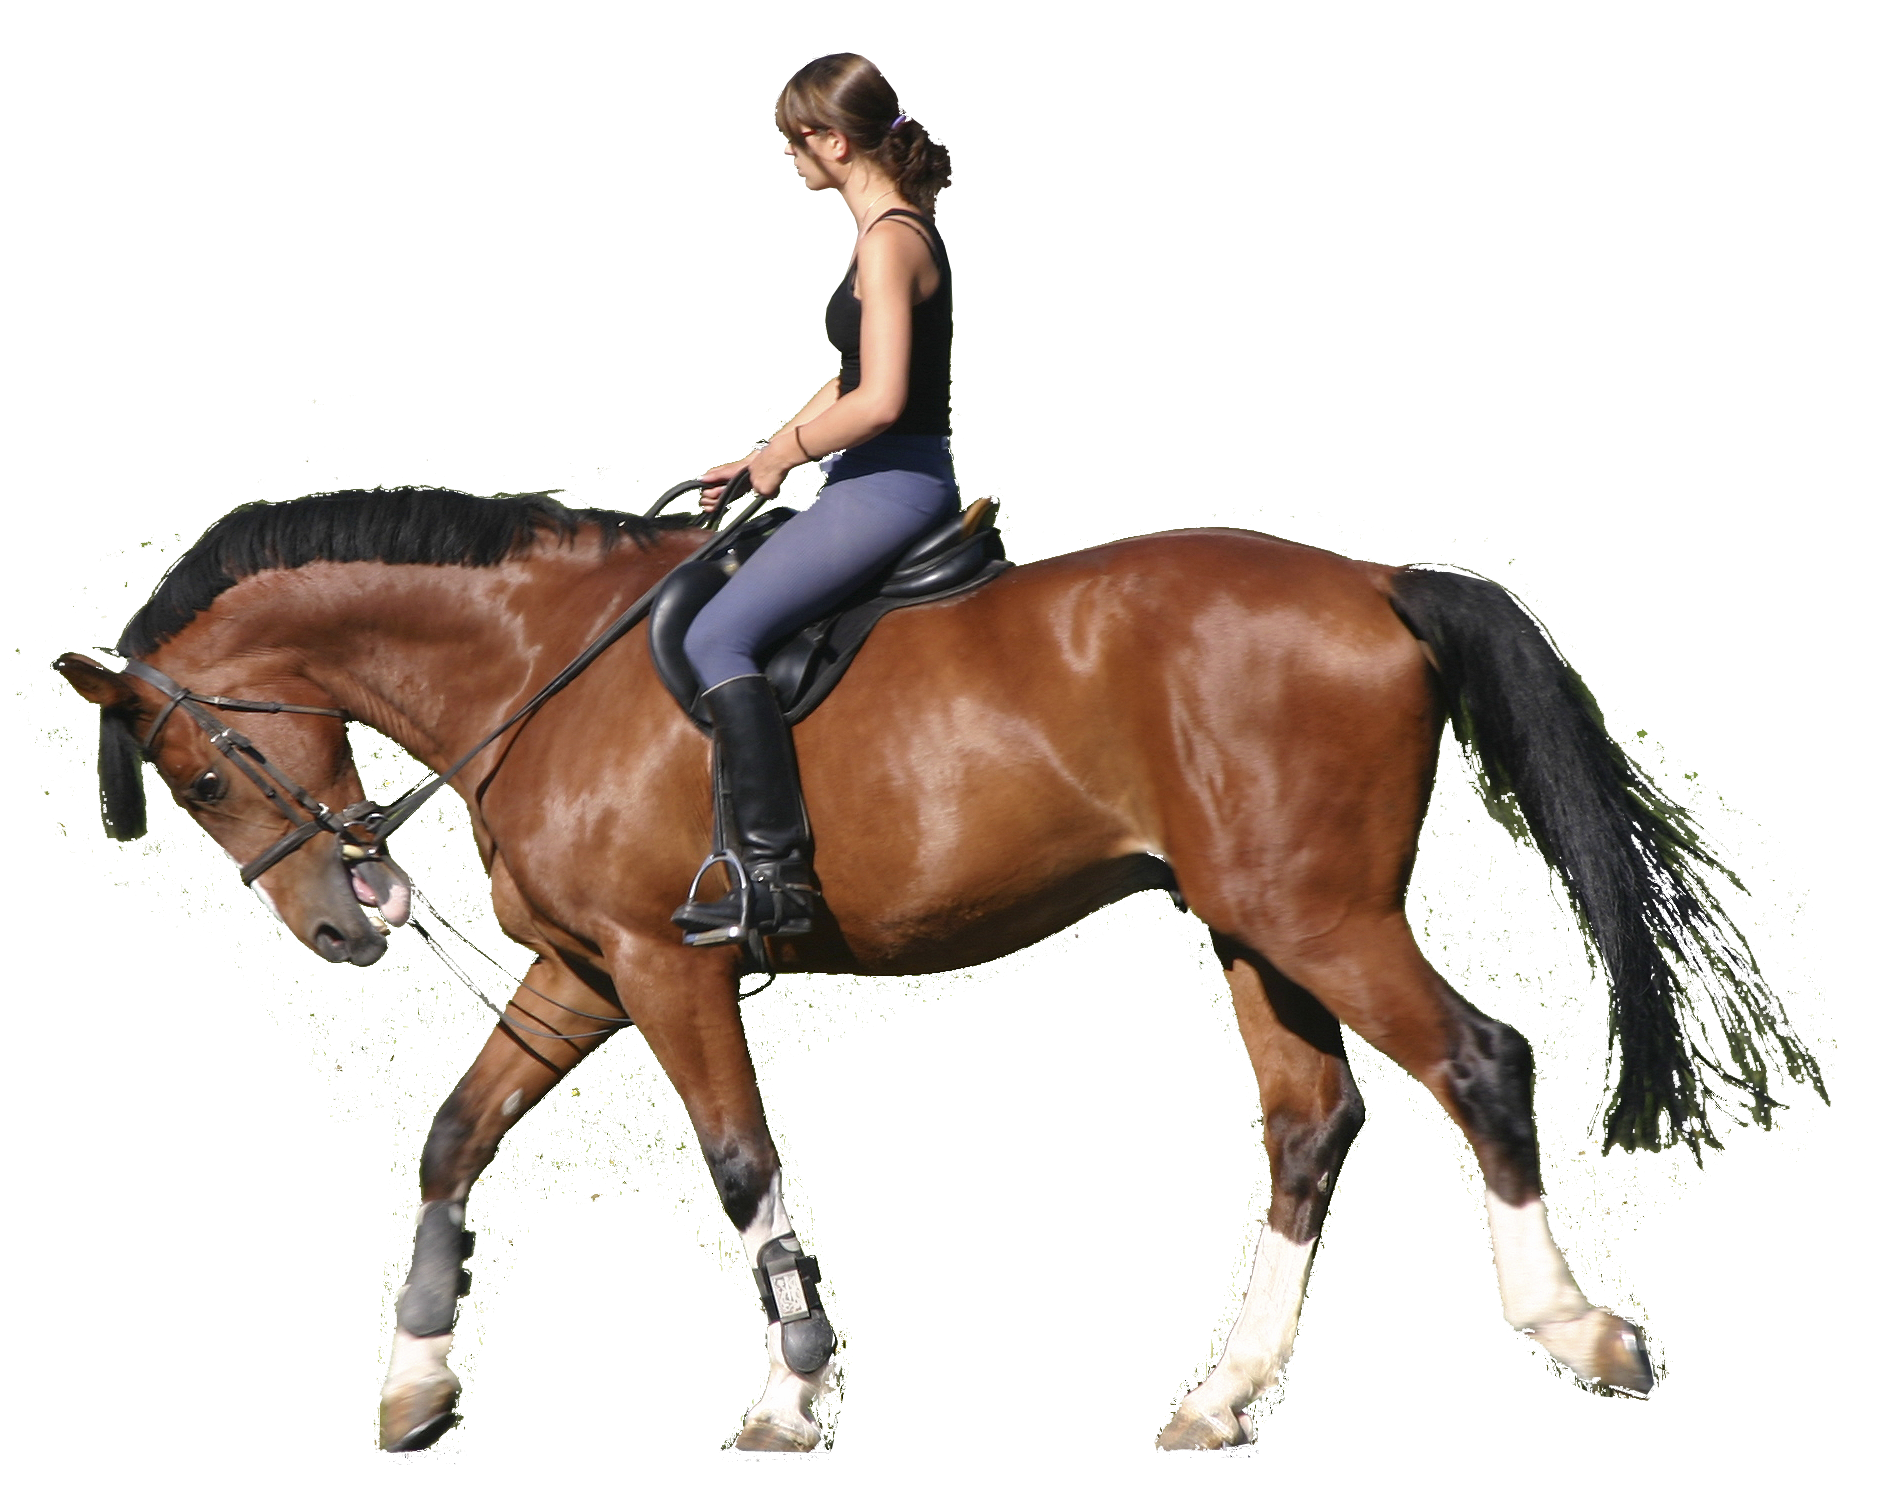 png horse riding transparent horse riding png images pluspng